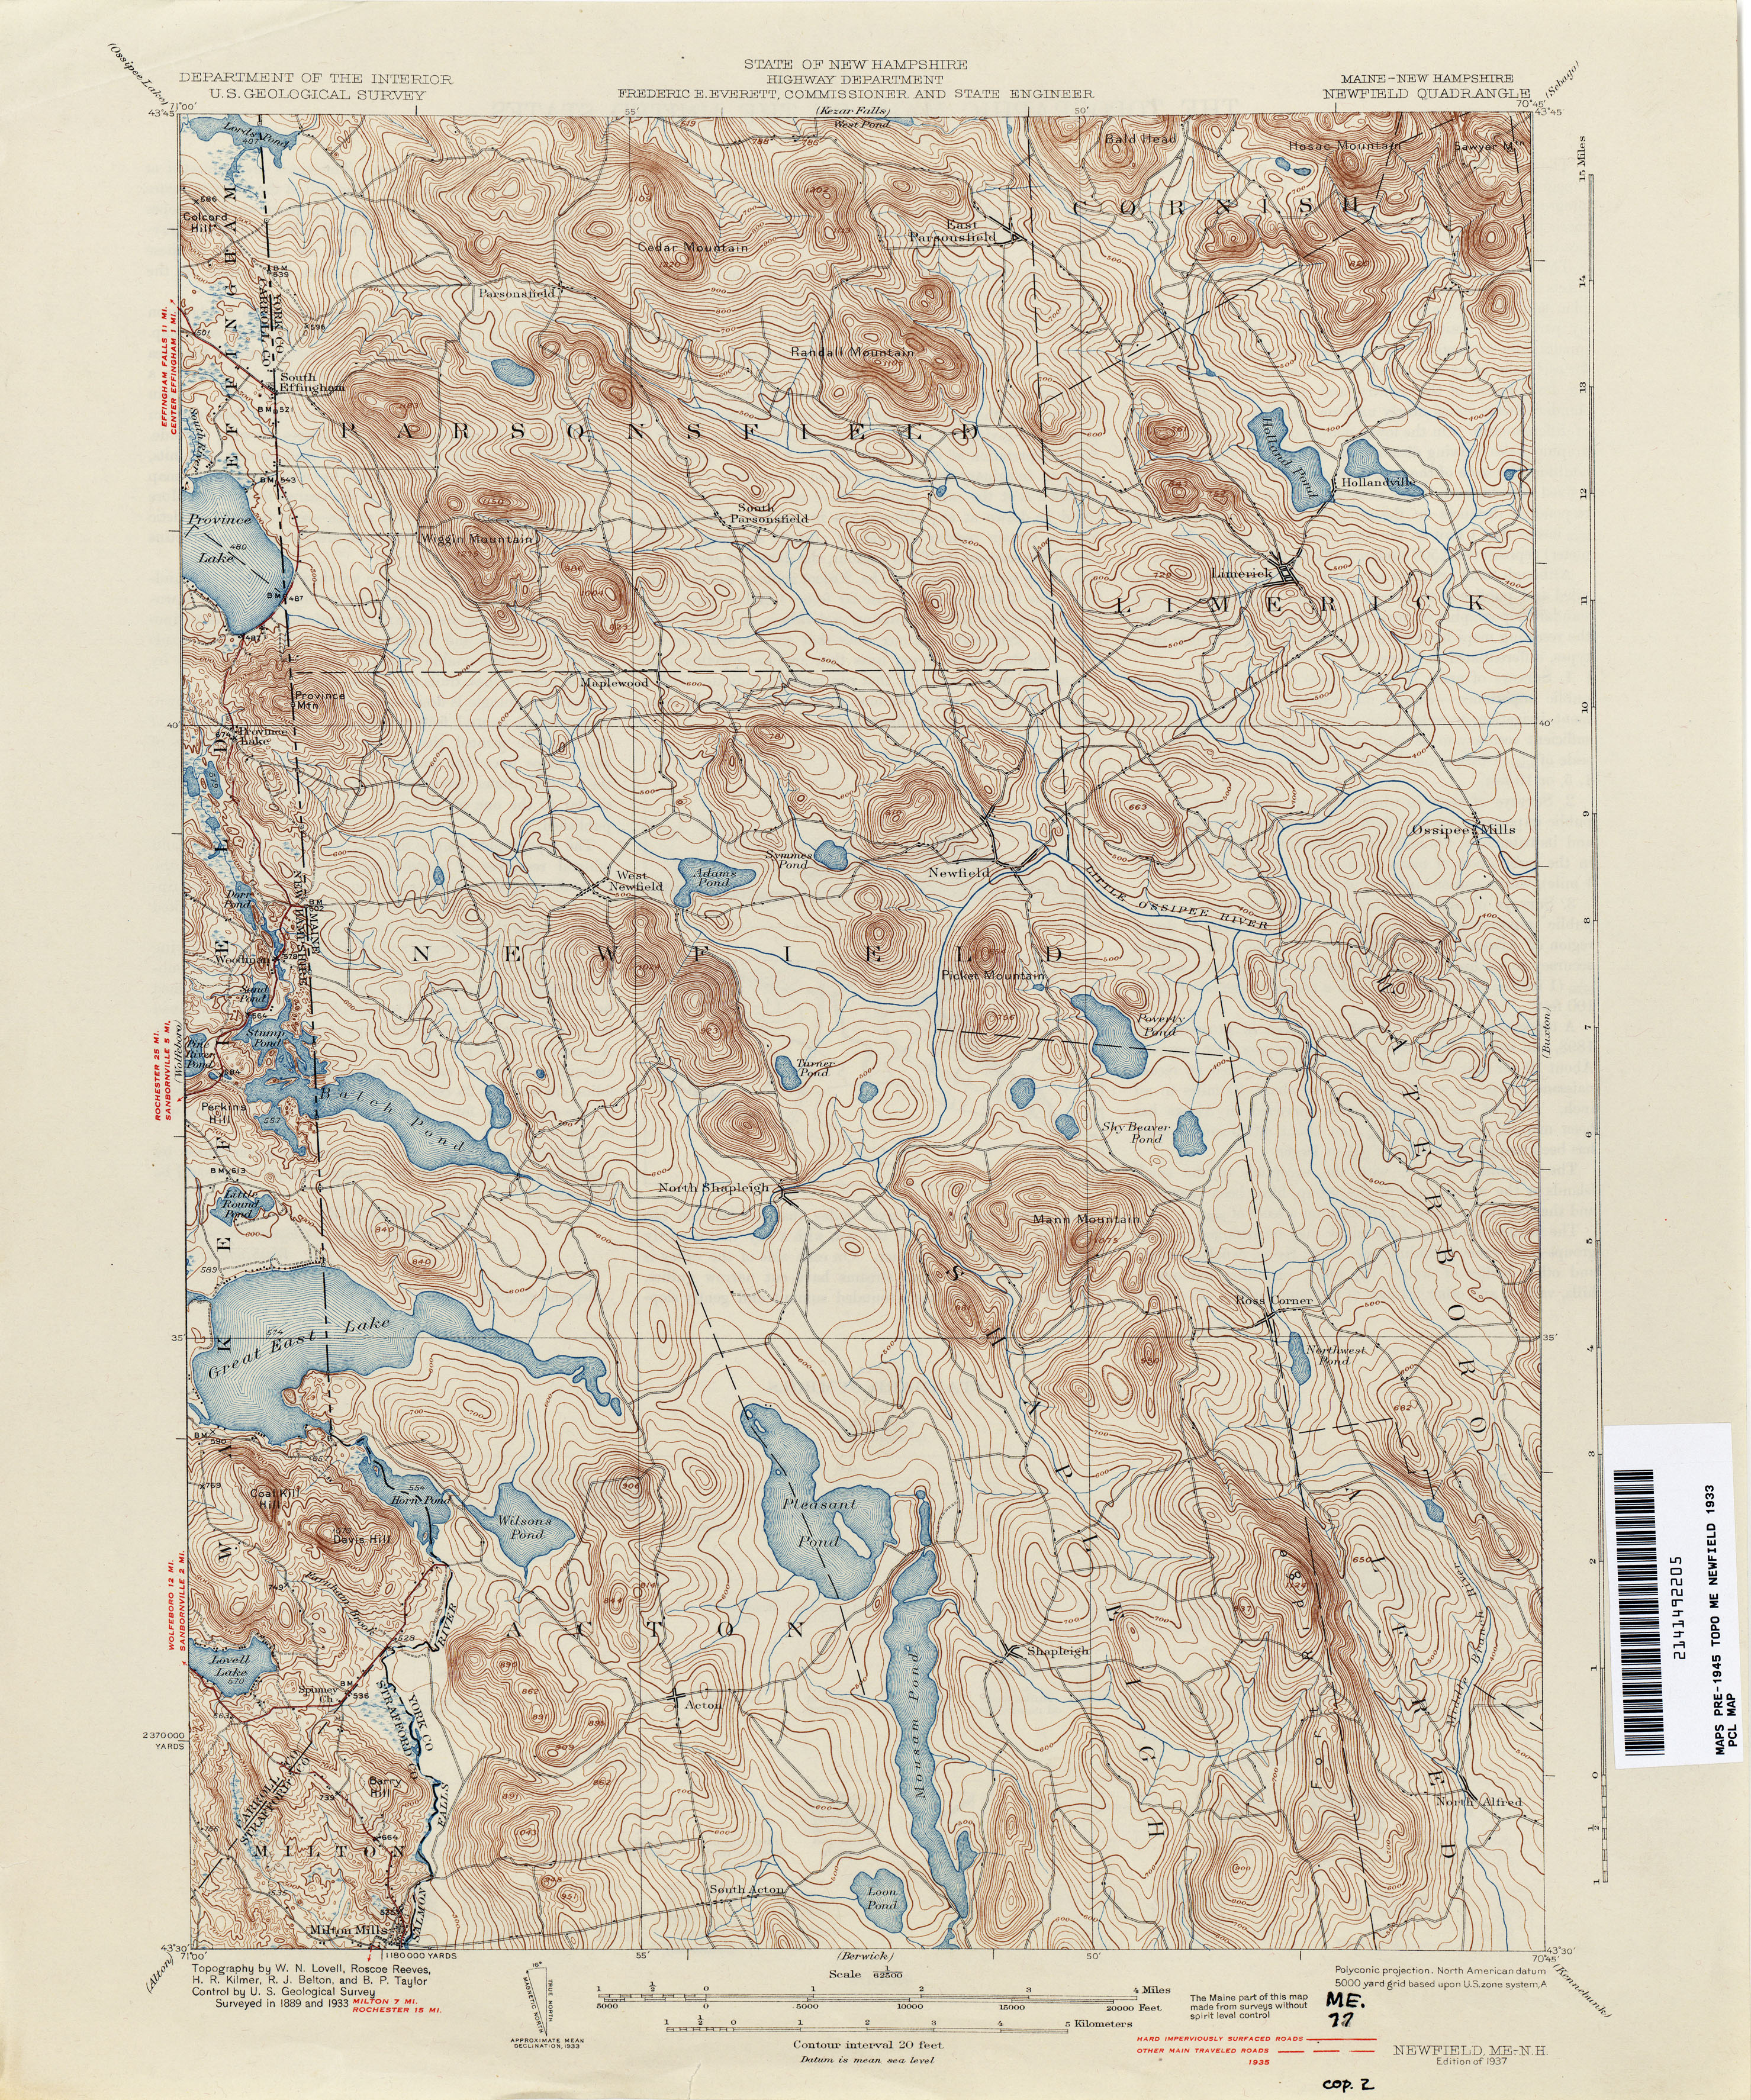 New hampshire topographic maps perry castaeda map collection newfield sciox Image collections